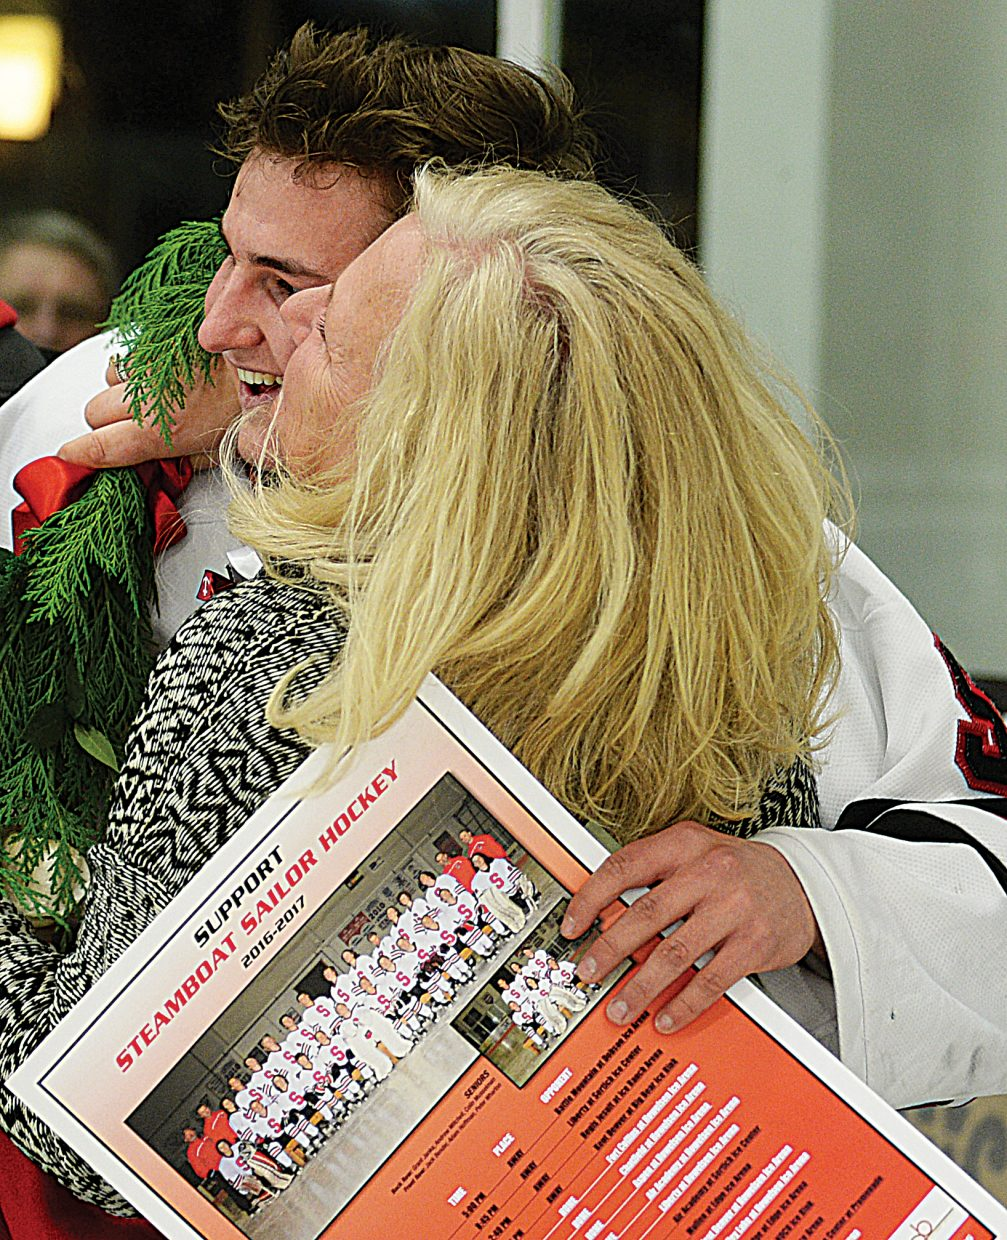 Steamboat Springs hockey player Peter Wharton hugs his mother at senior night ceremonies, held during Friday's game between Steamboat and Kent Denver. The game ended in a 3-3 tie.